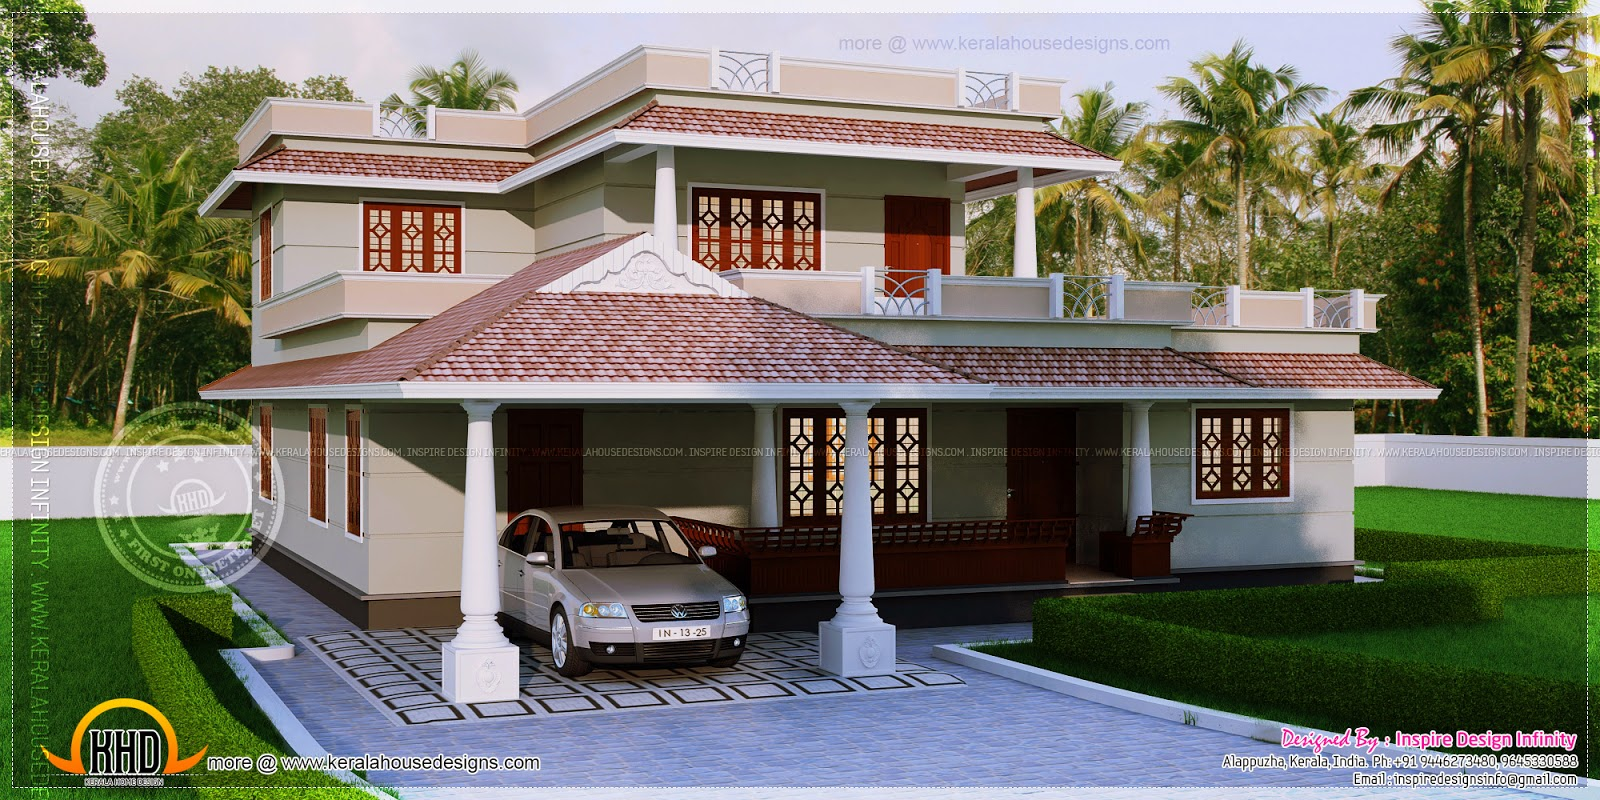 4 bedroom kerala style house in 300 square yards kerala for House plans in kerala with 2 bedrooms